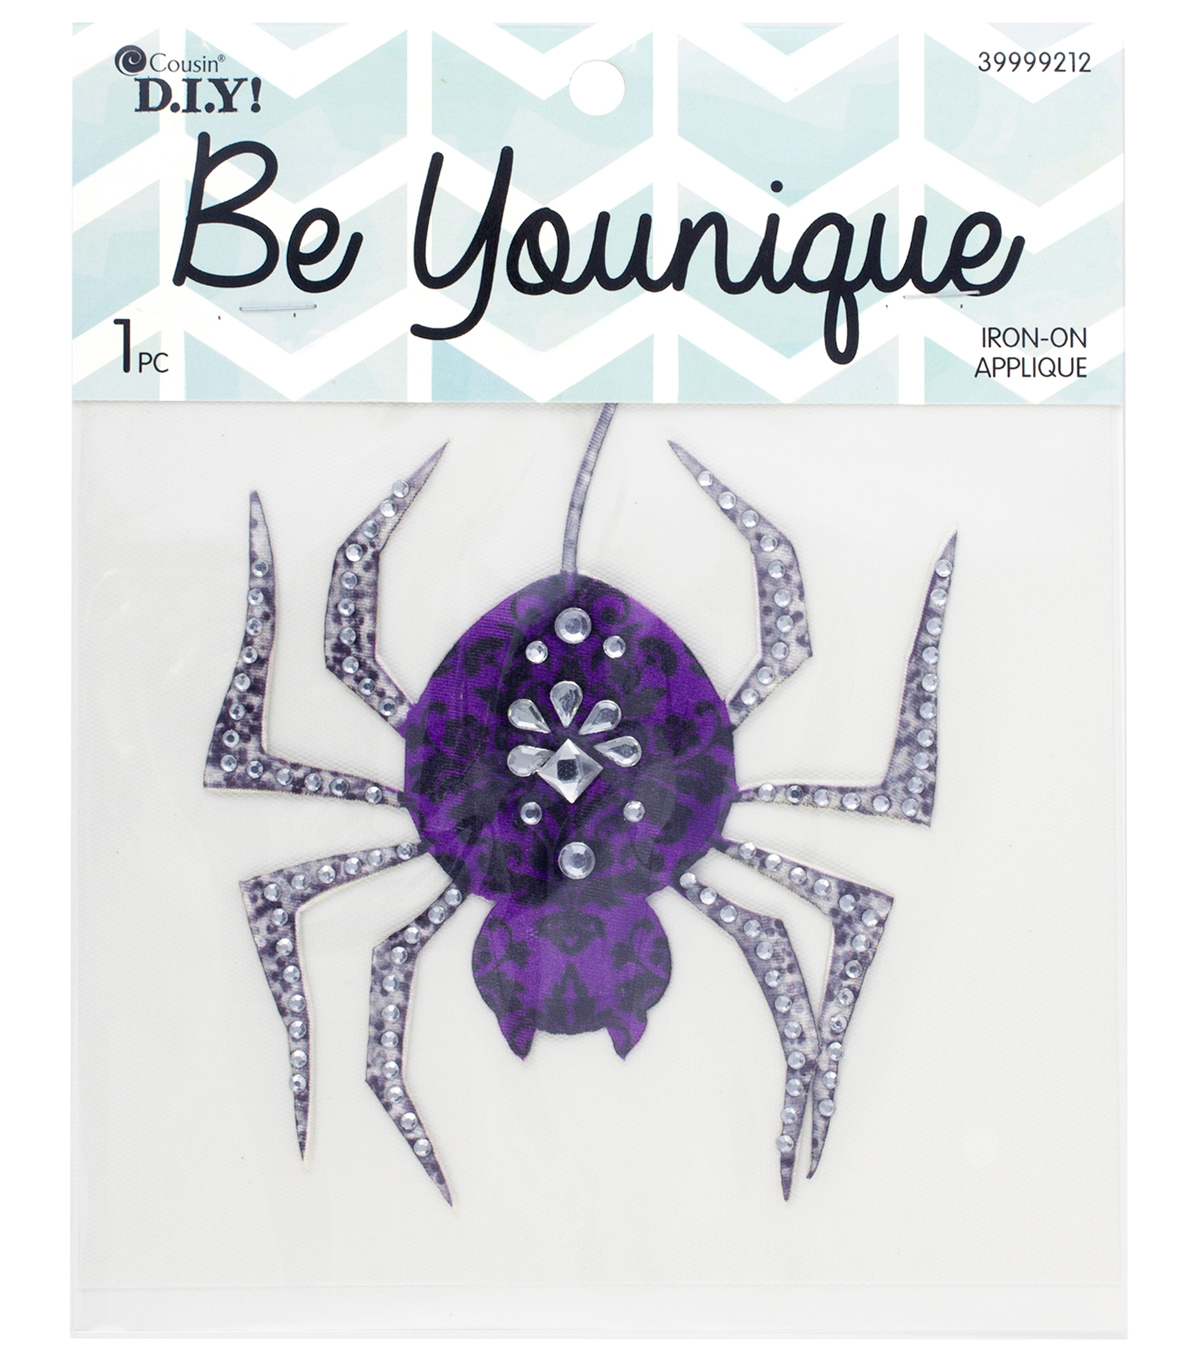 Cousin® DIY Be Younique Iron-On Transfer-Spider